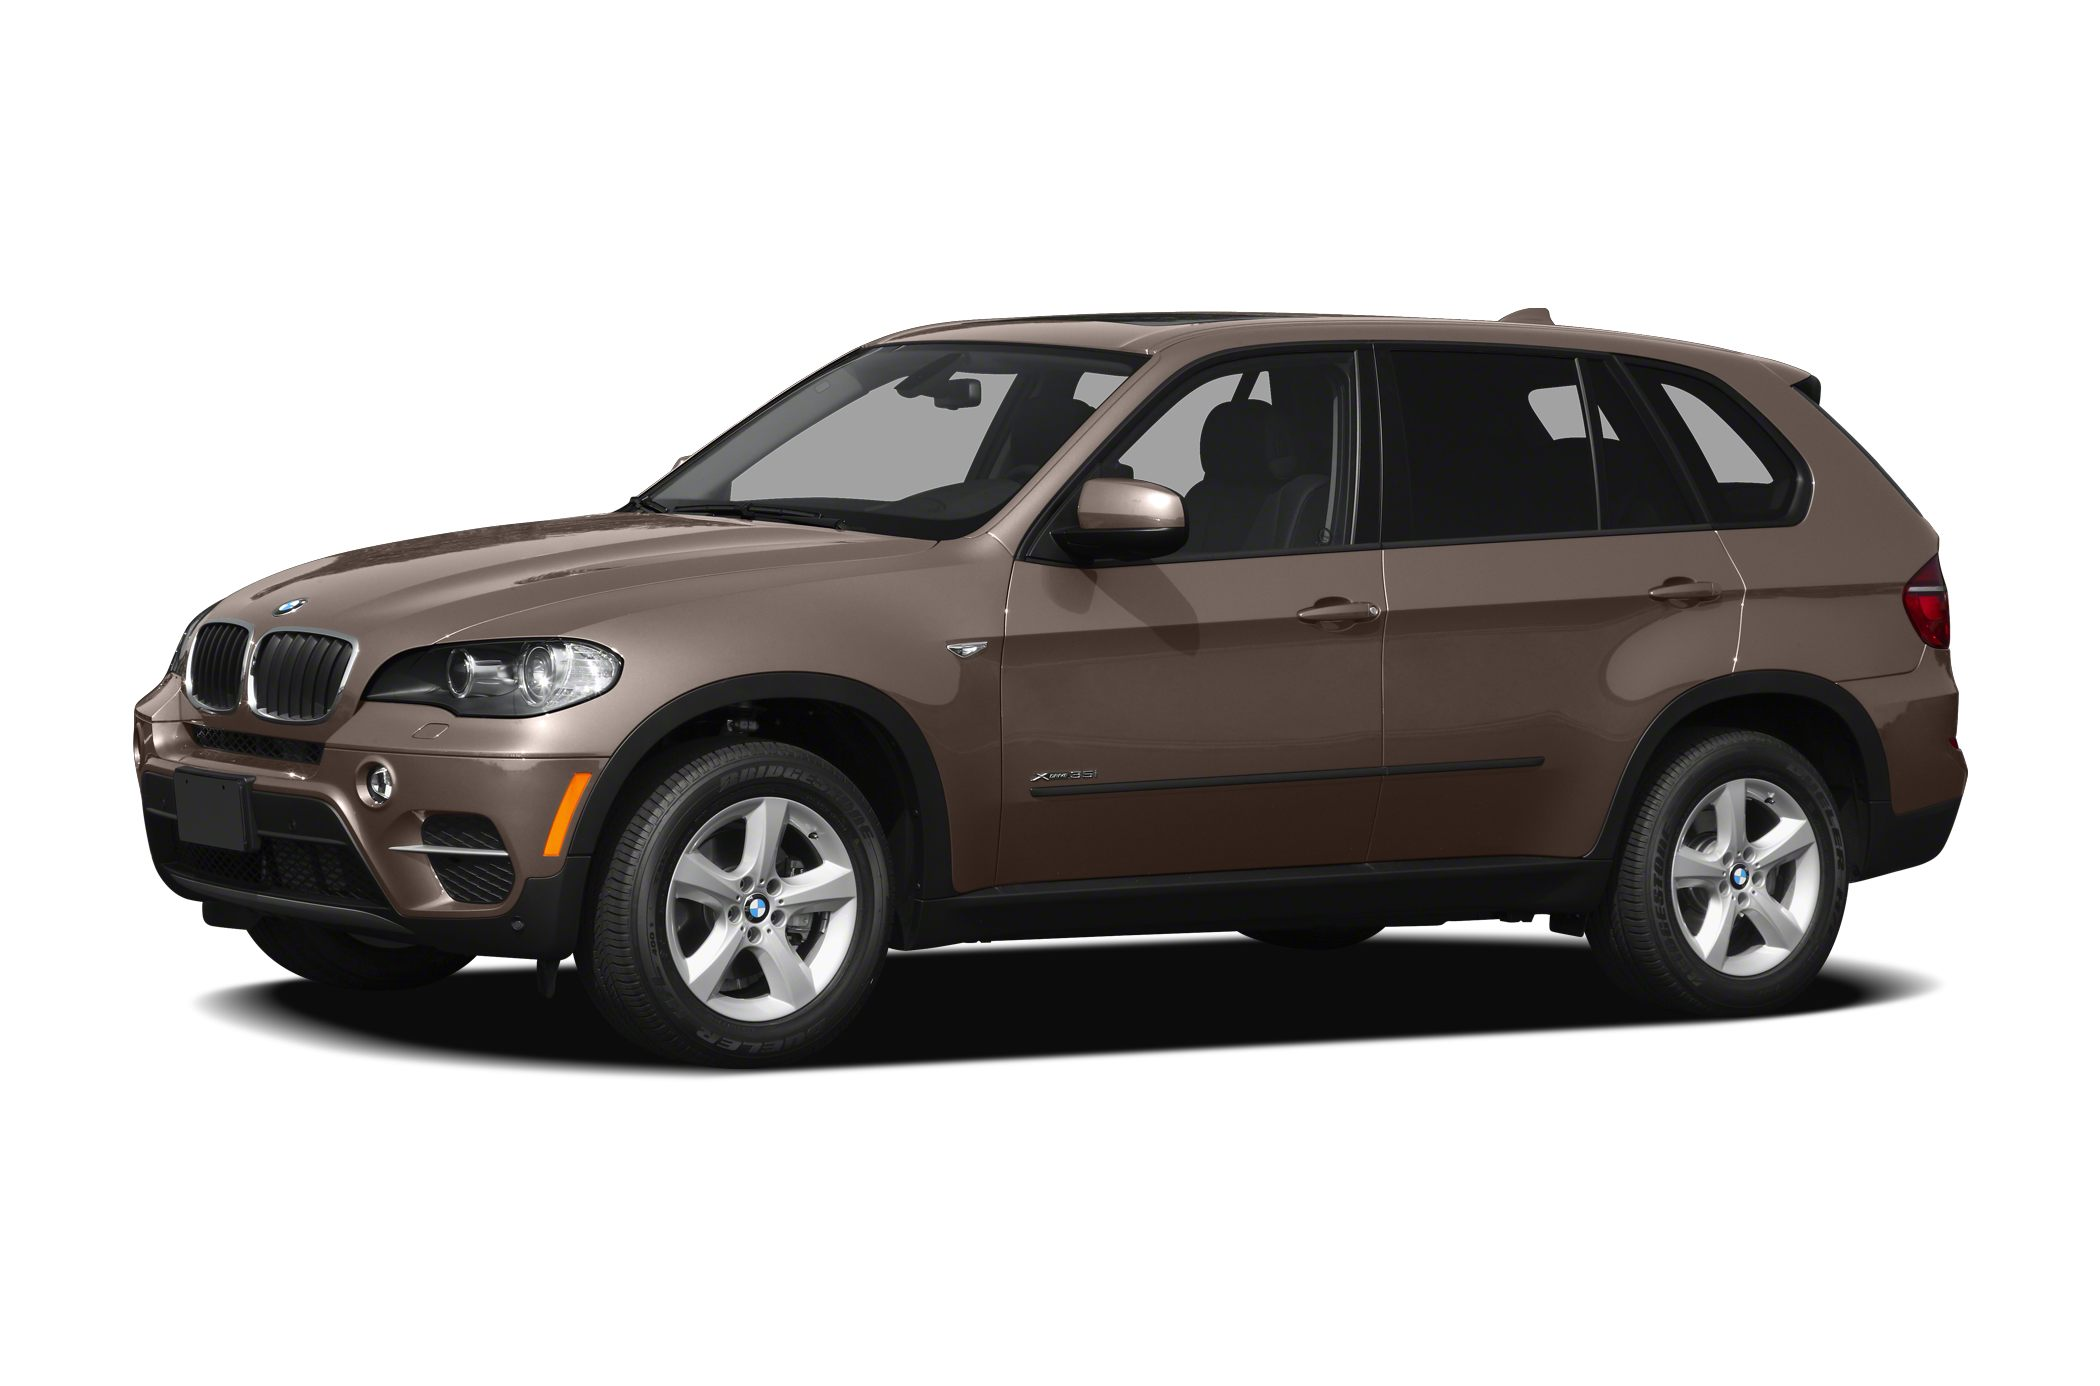 2011 Bmw X5 Xdrive50i 4dr All Wheel Drive Sports Activity Vehicle Specs And Prices